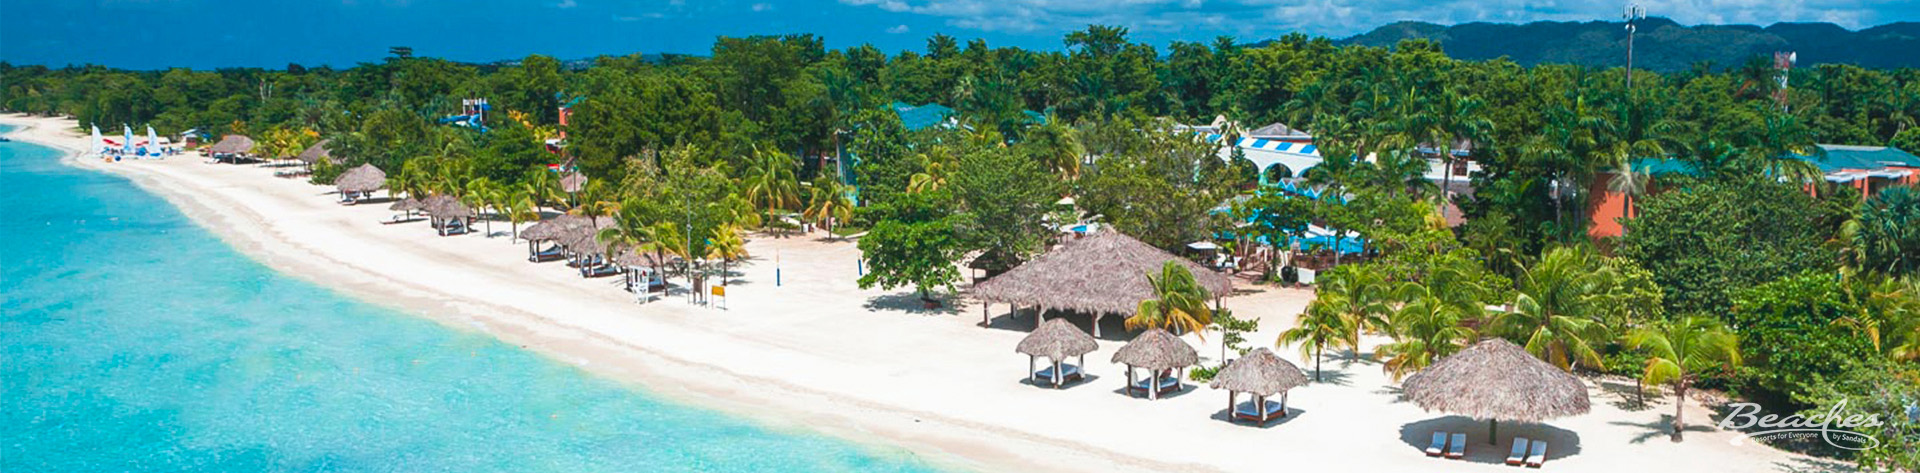 beaches negril caribbean beachfront vacation